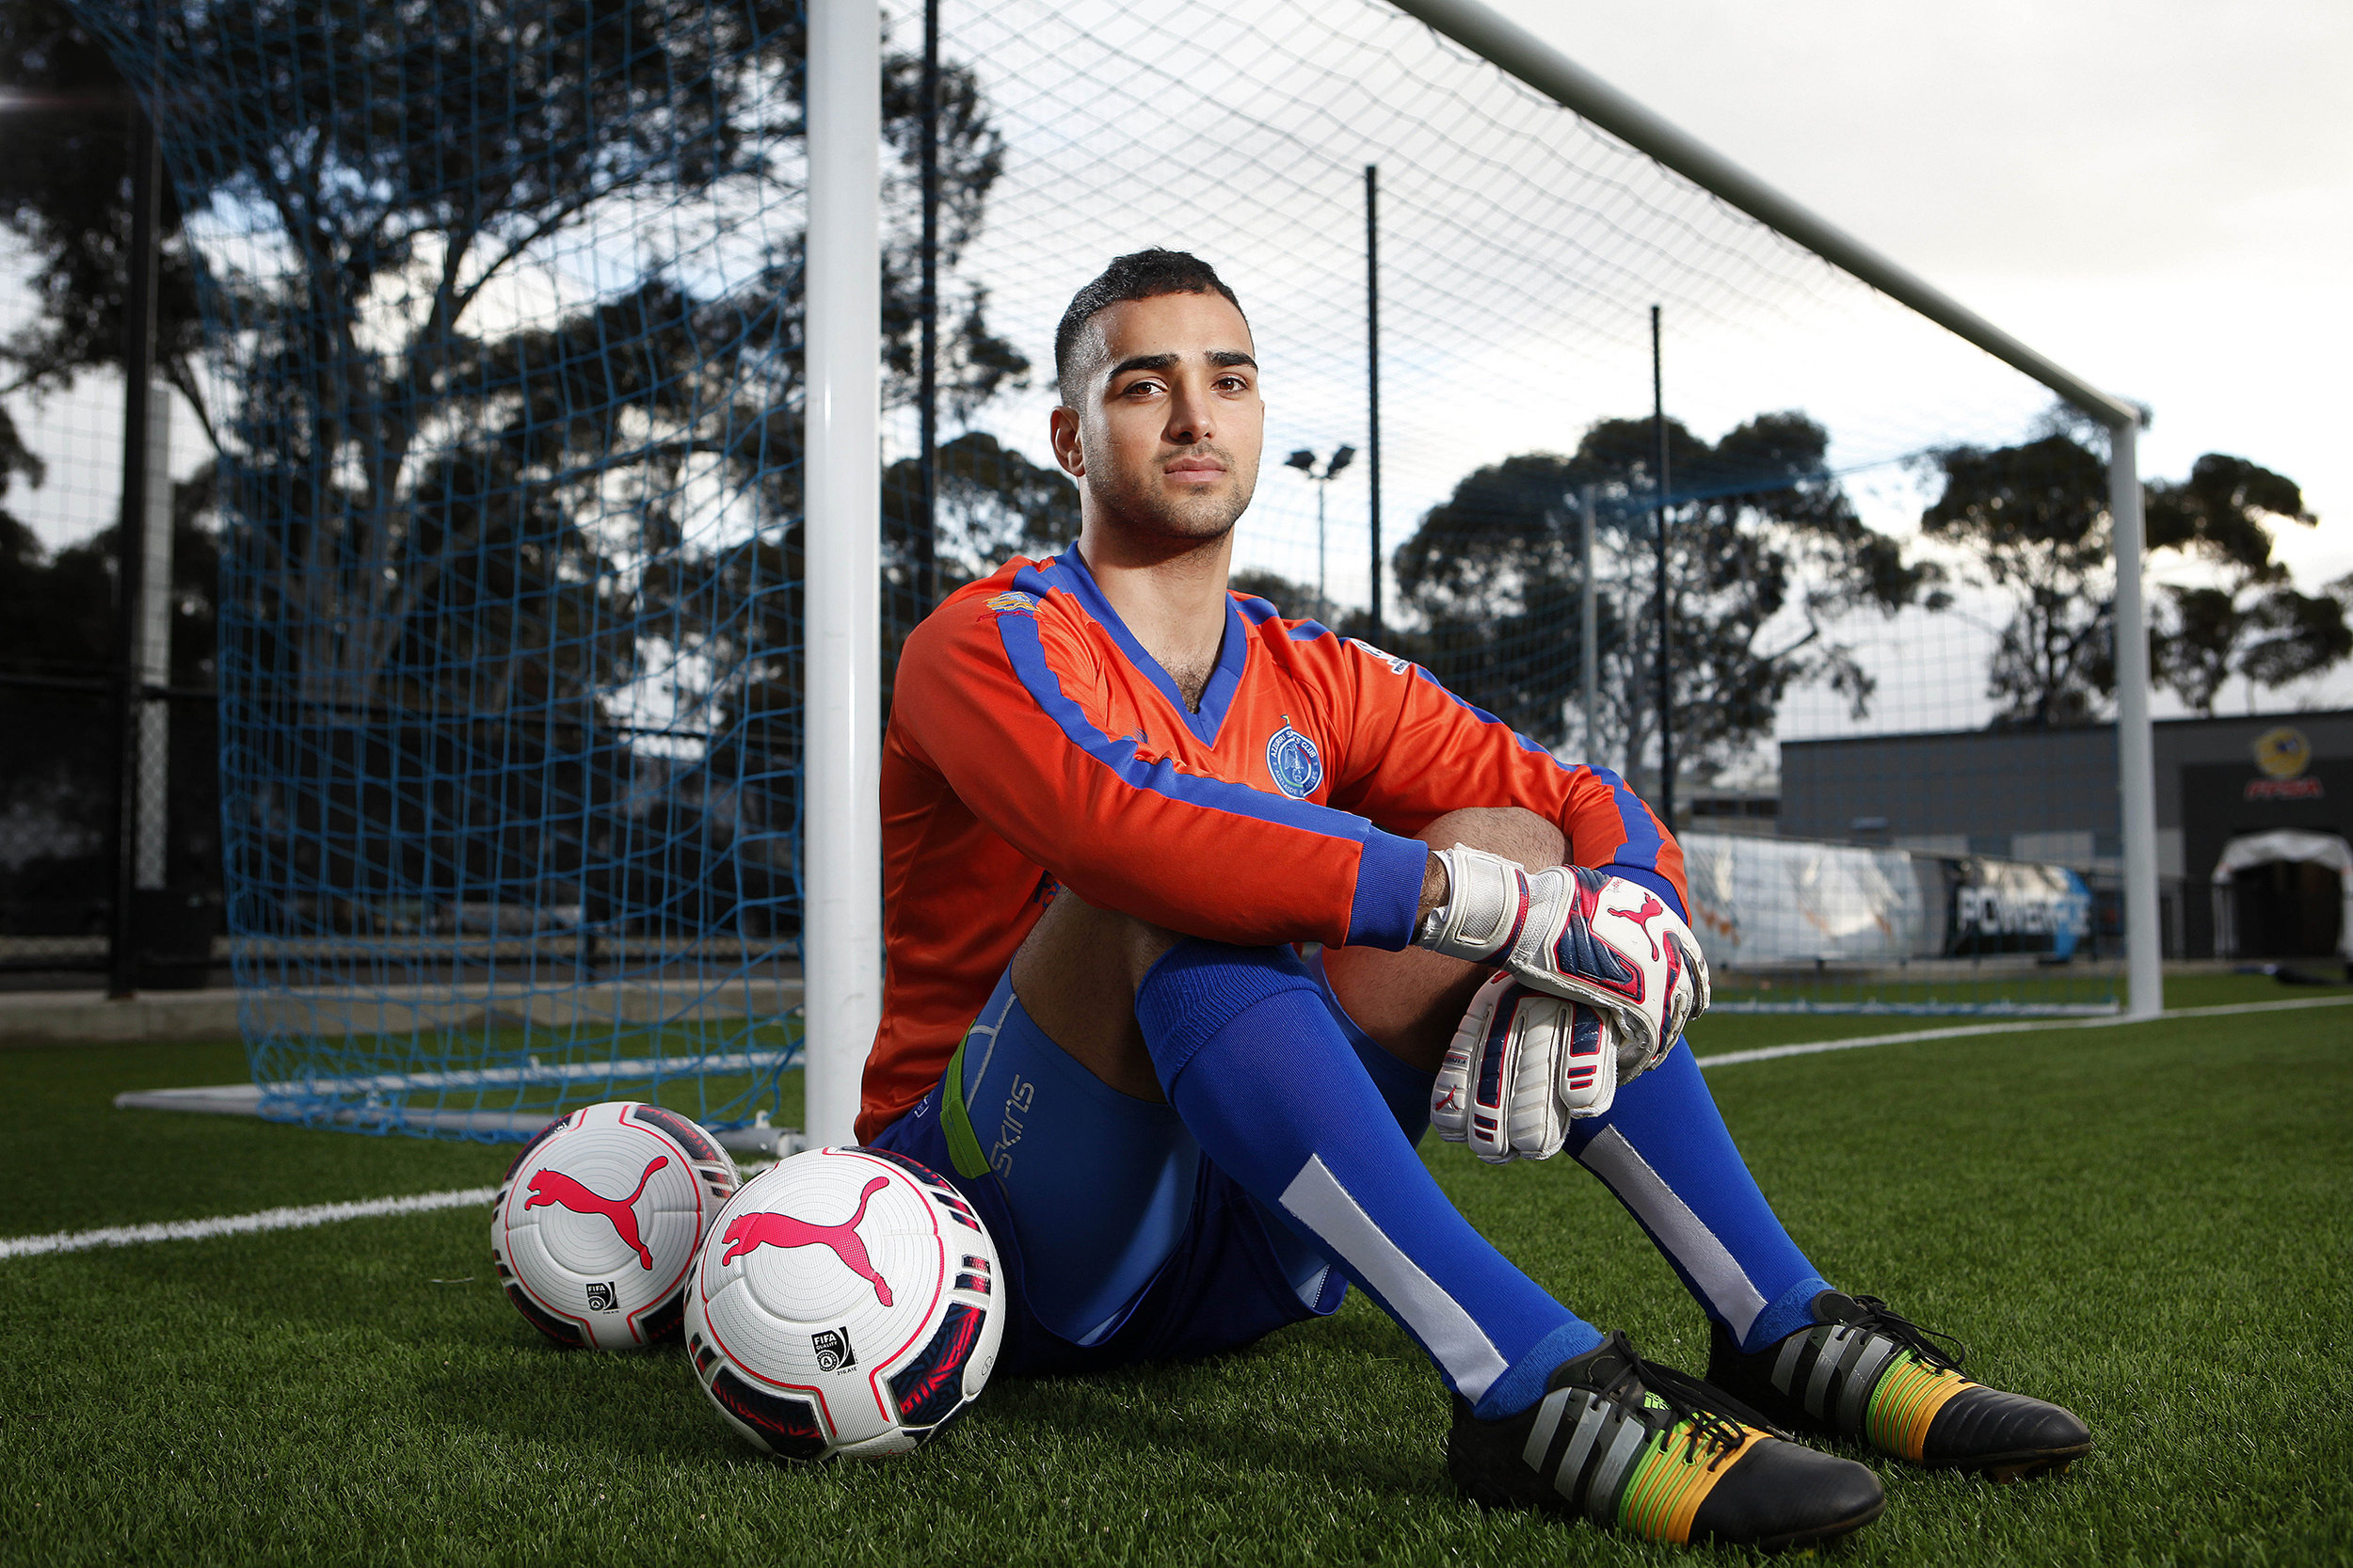 CHP_Export_124425244_Premier League soccer grand final preview. [PIC] Adelaide Blue Eagles goalkeepe.jpg